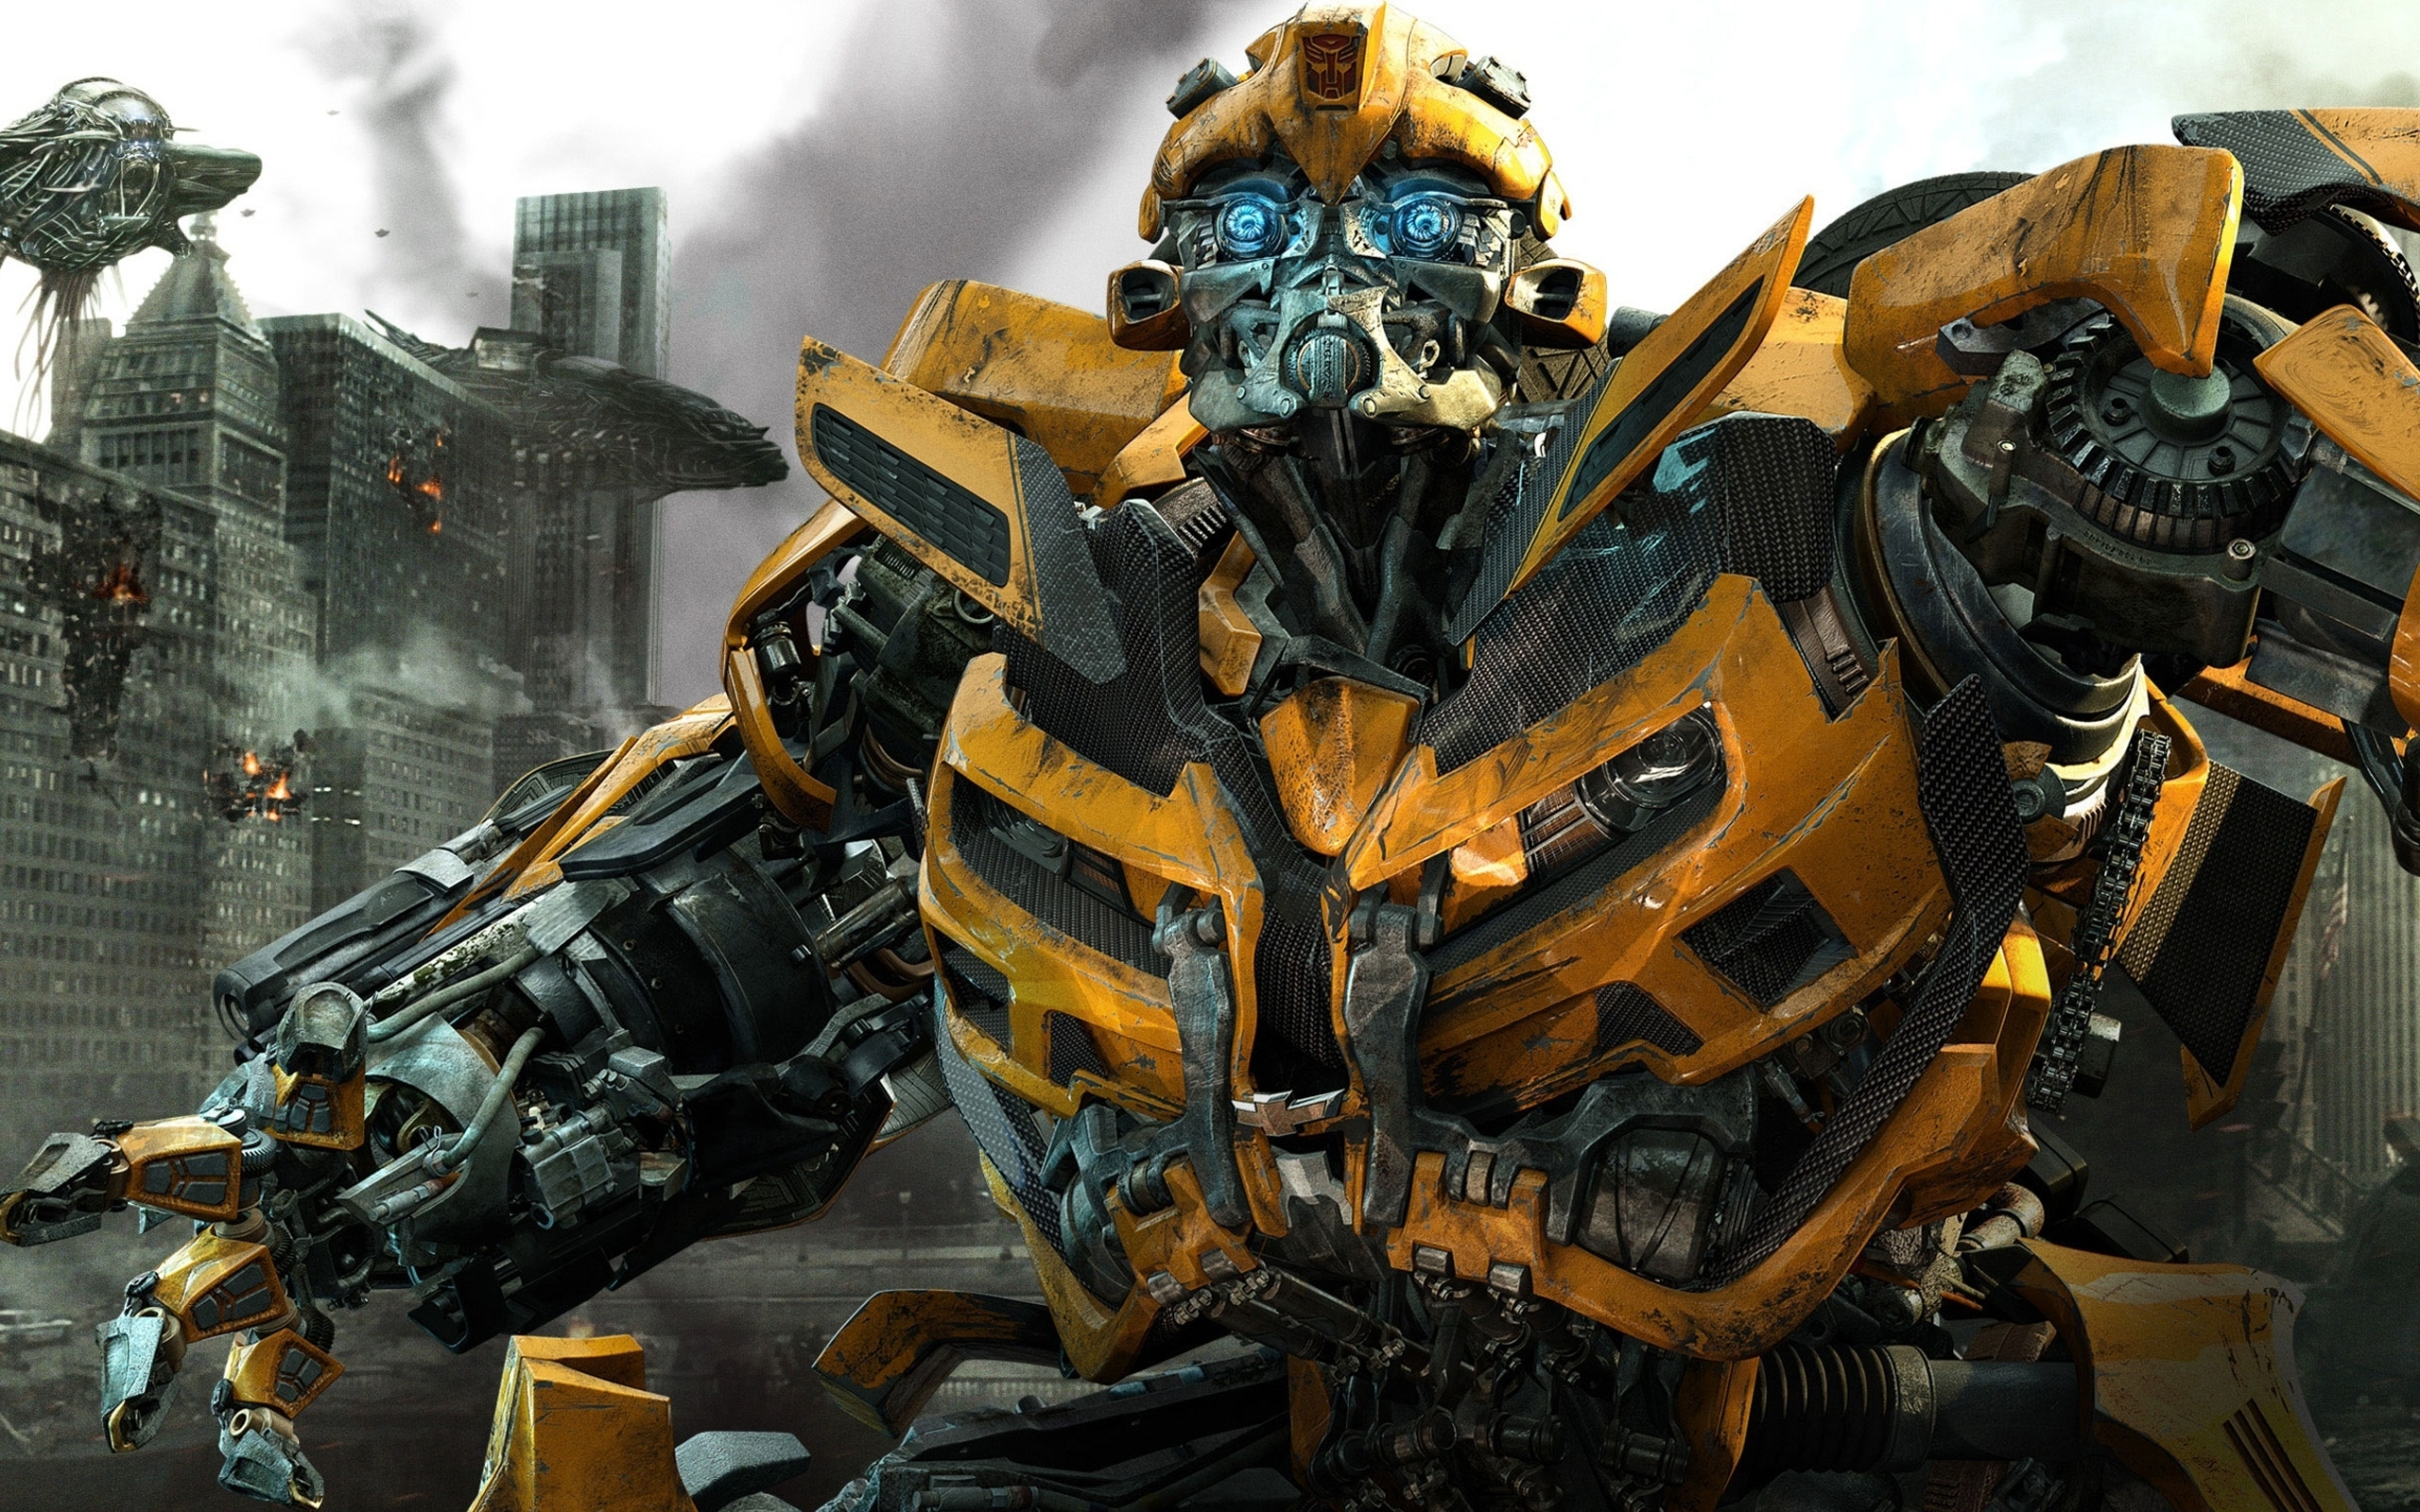 transformers bumblebee wallpaper wallpapers for free download about